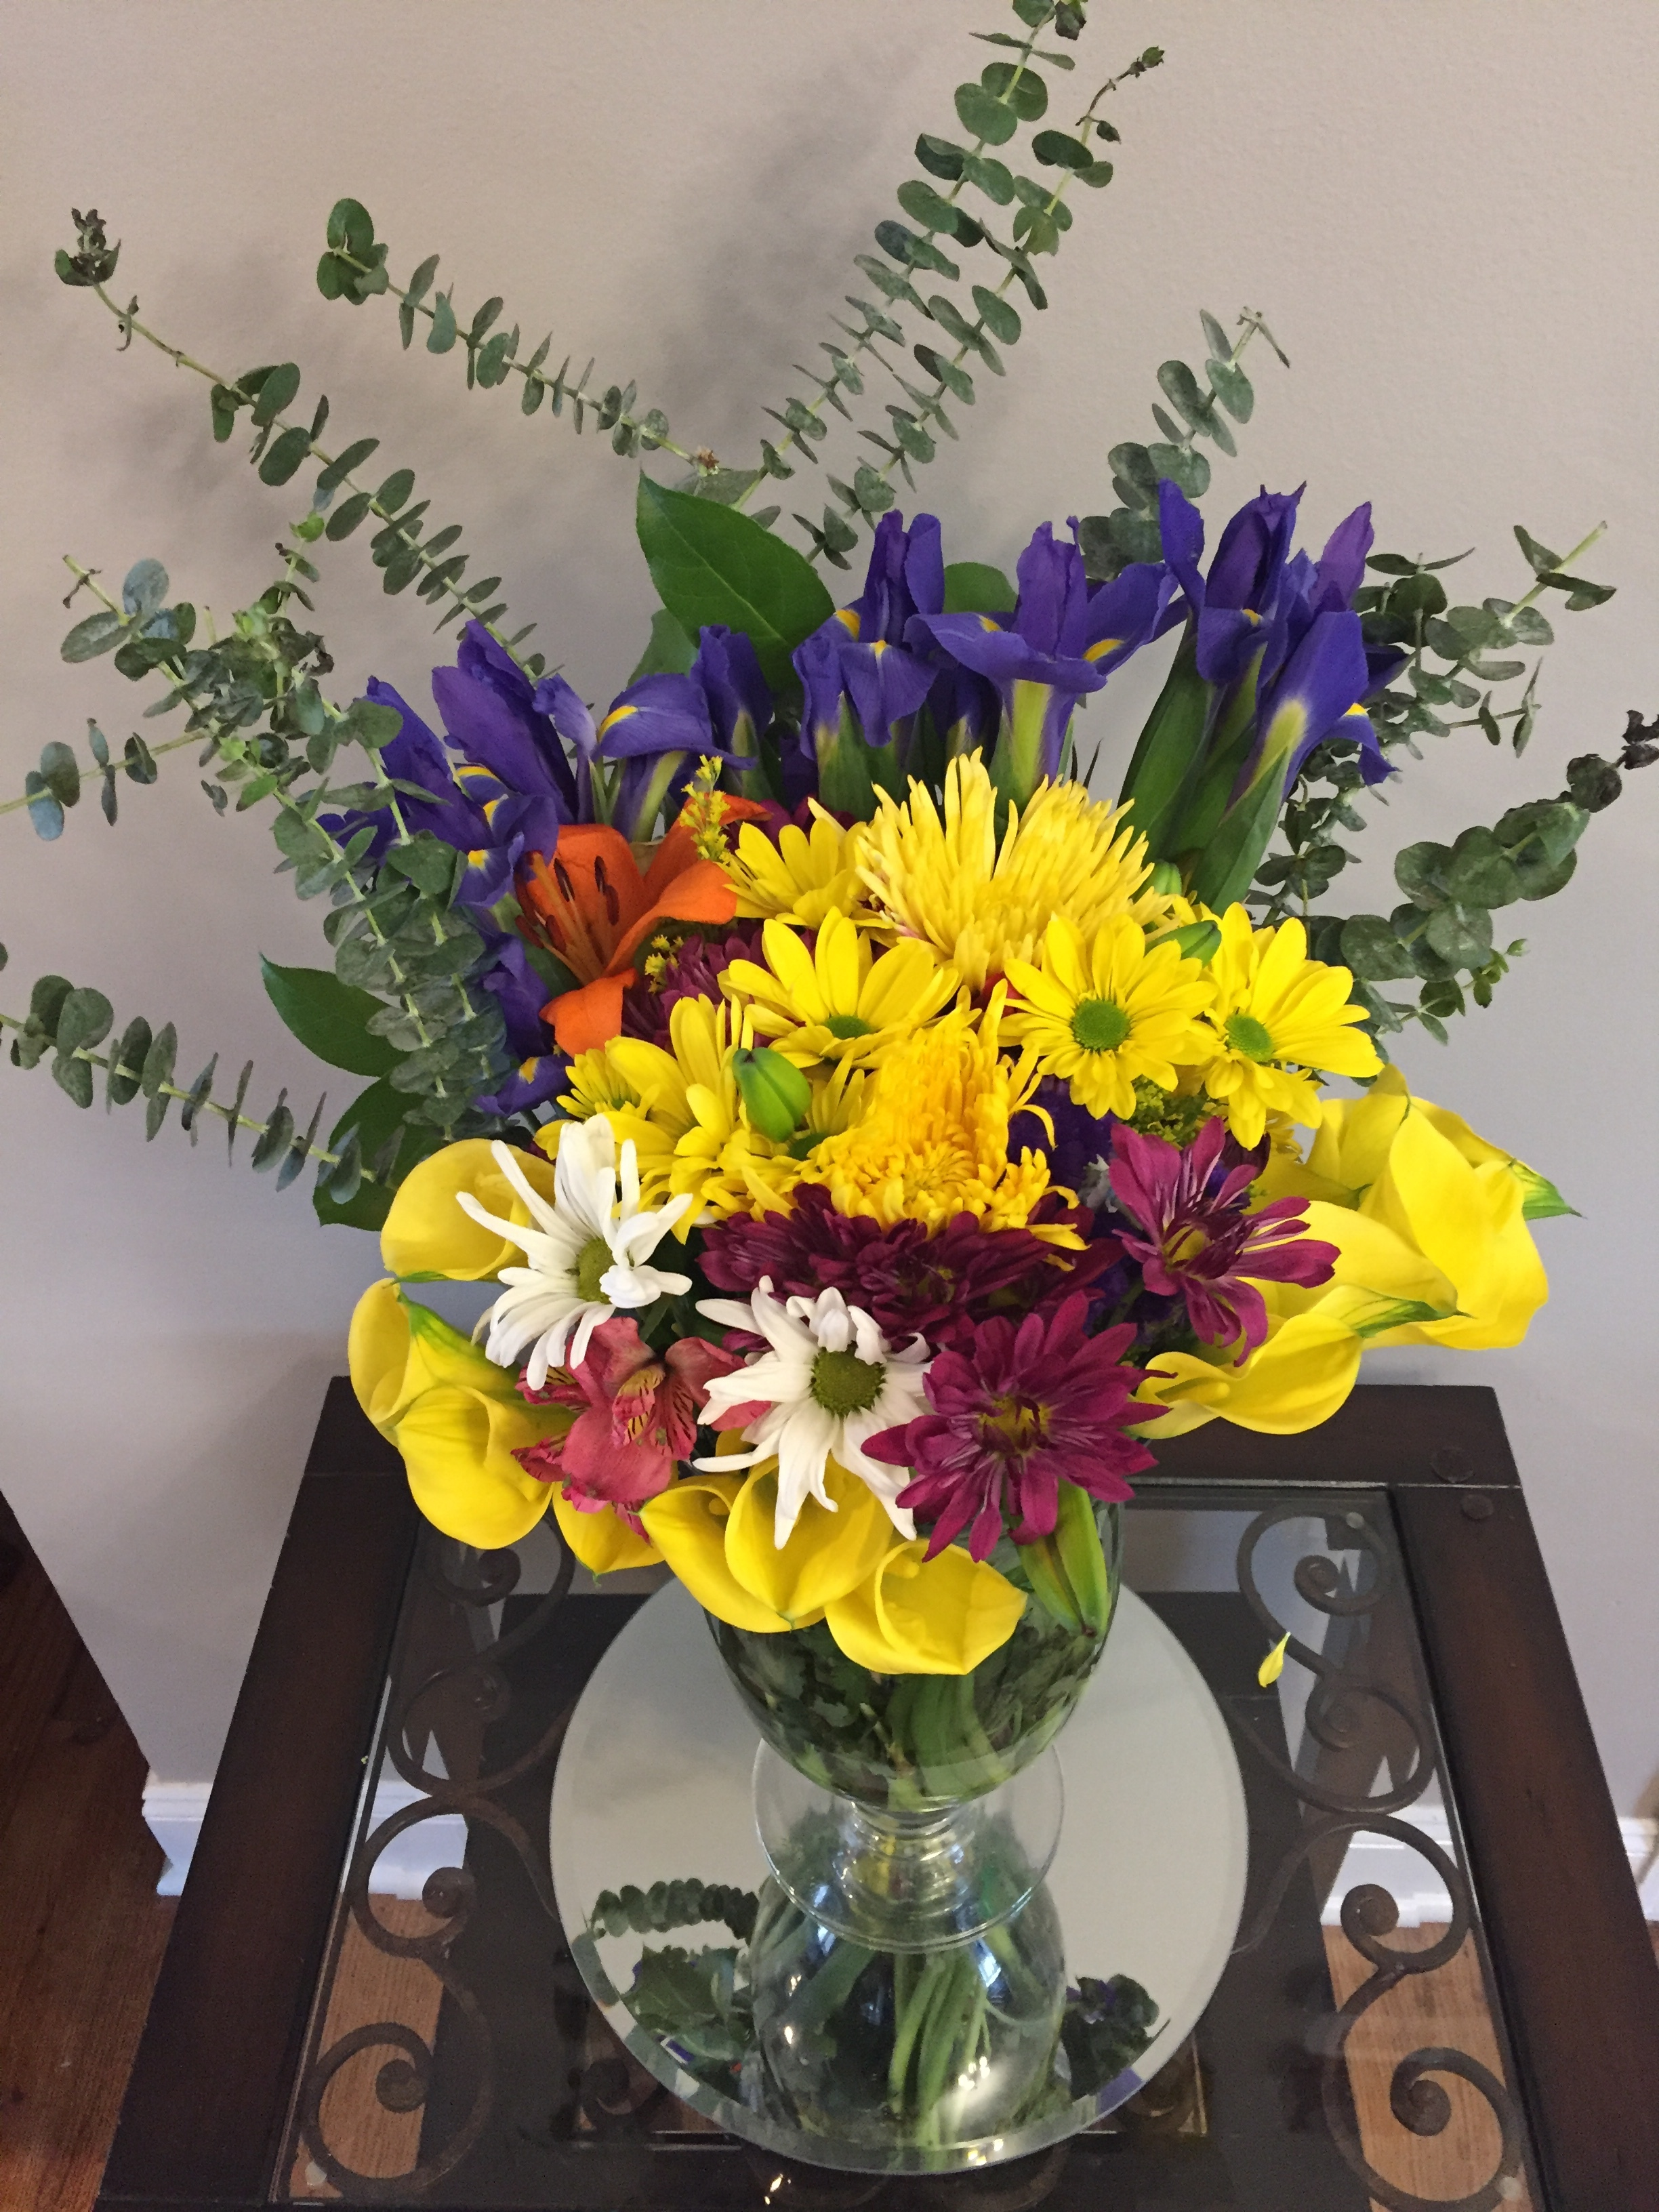 Bright and Colorful Florals are a pleasing seasonal accent - whether fresh or permanent. They are also a perfect way to add a pop of color.